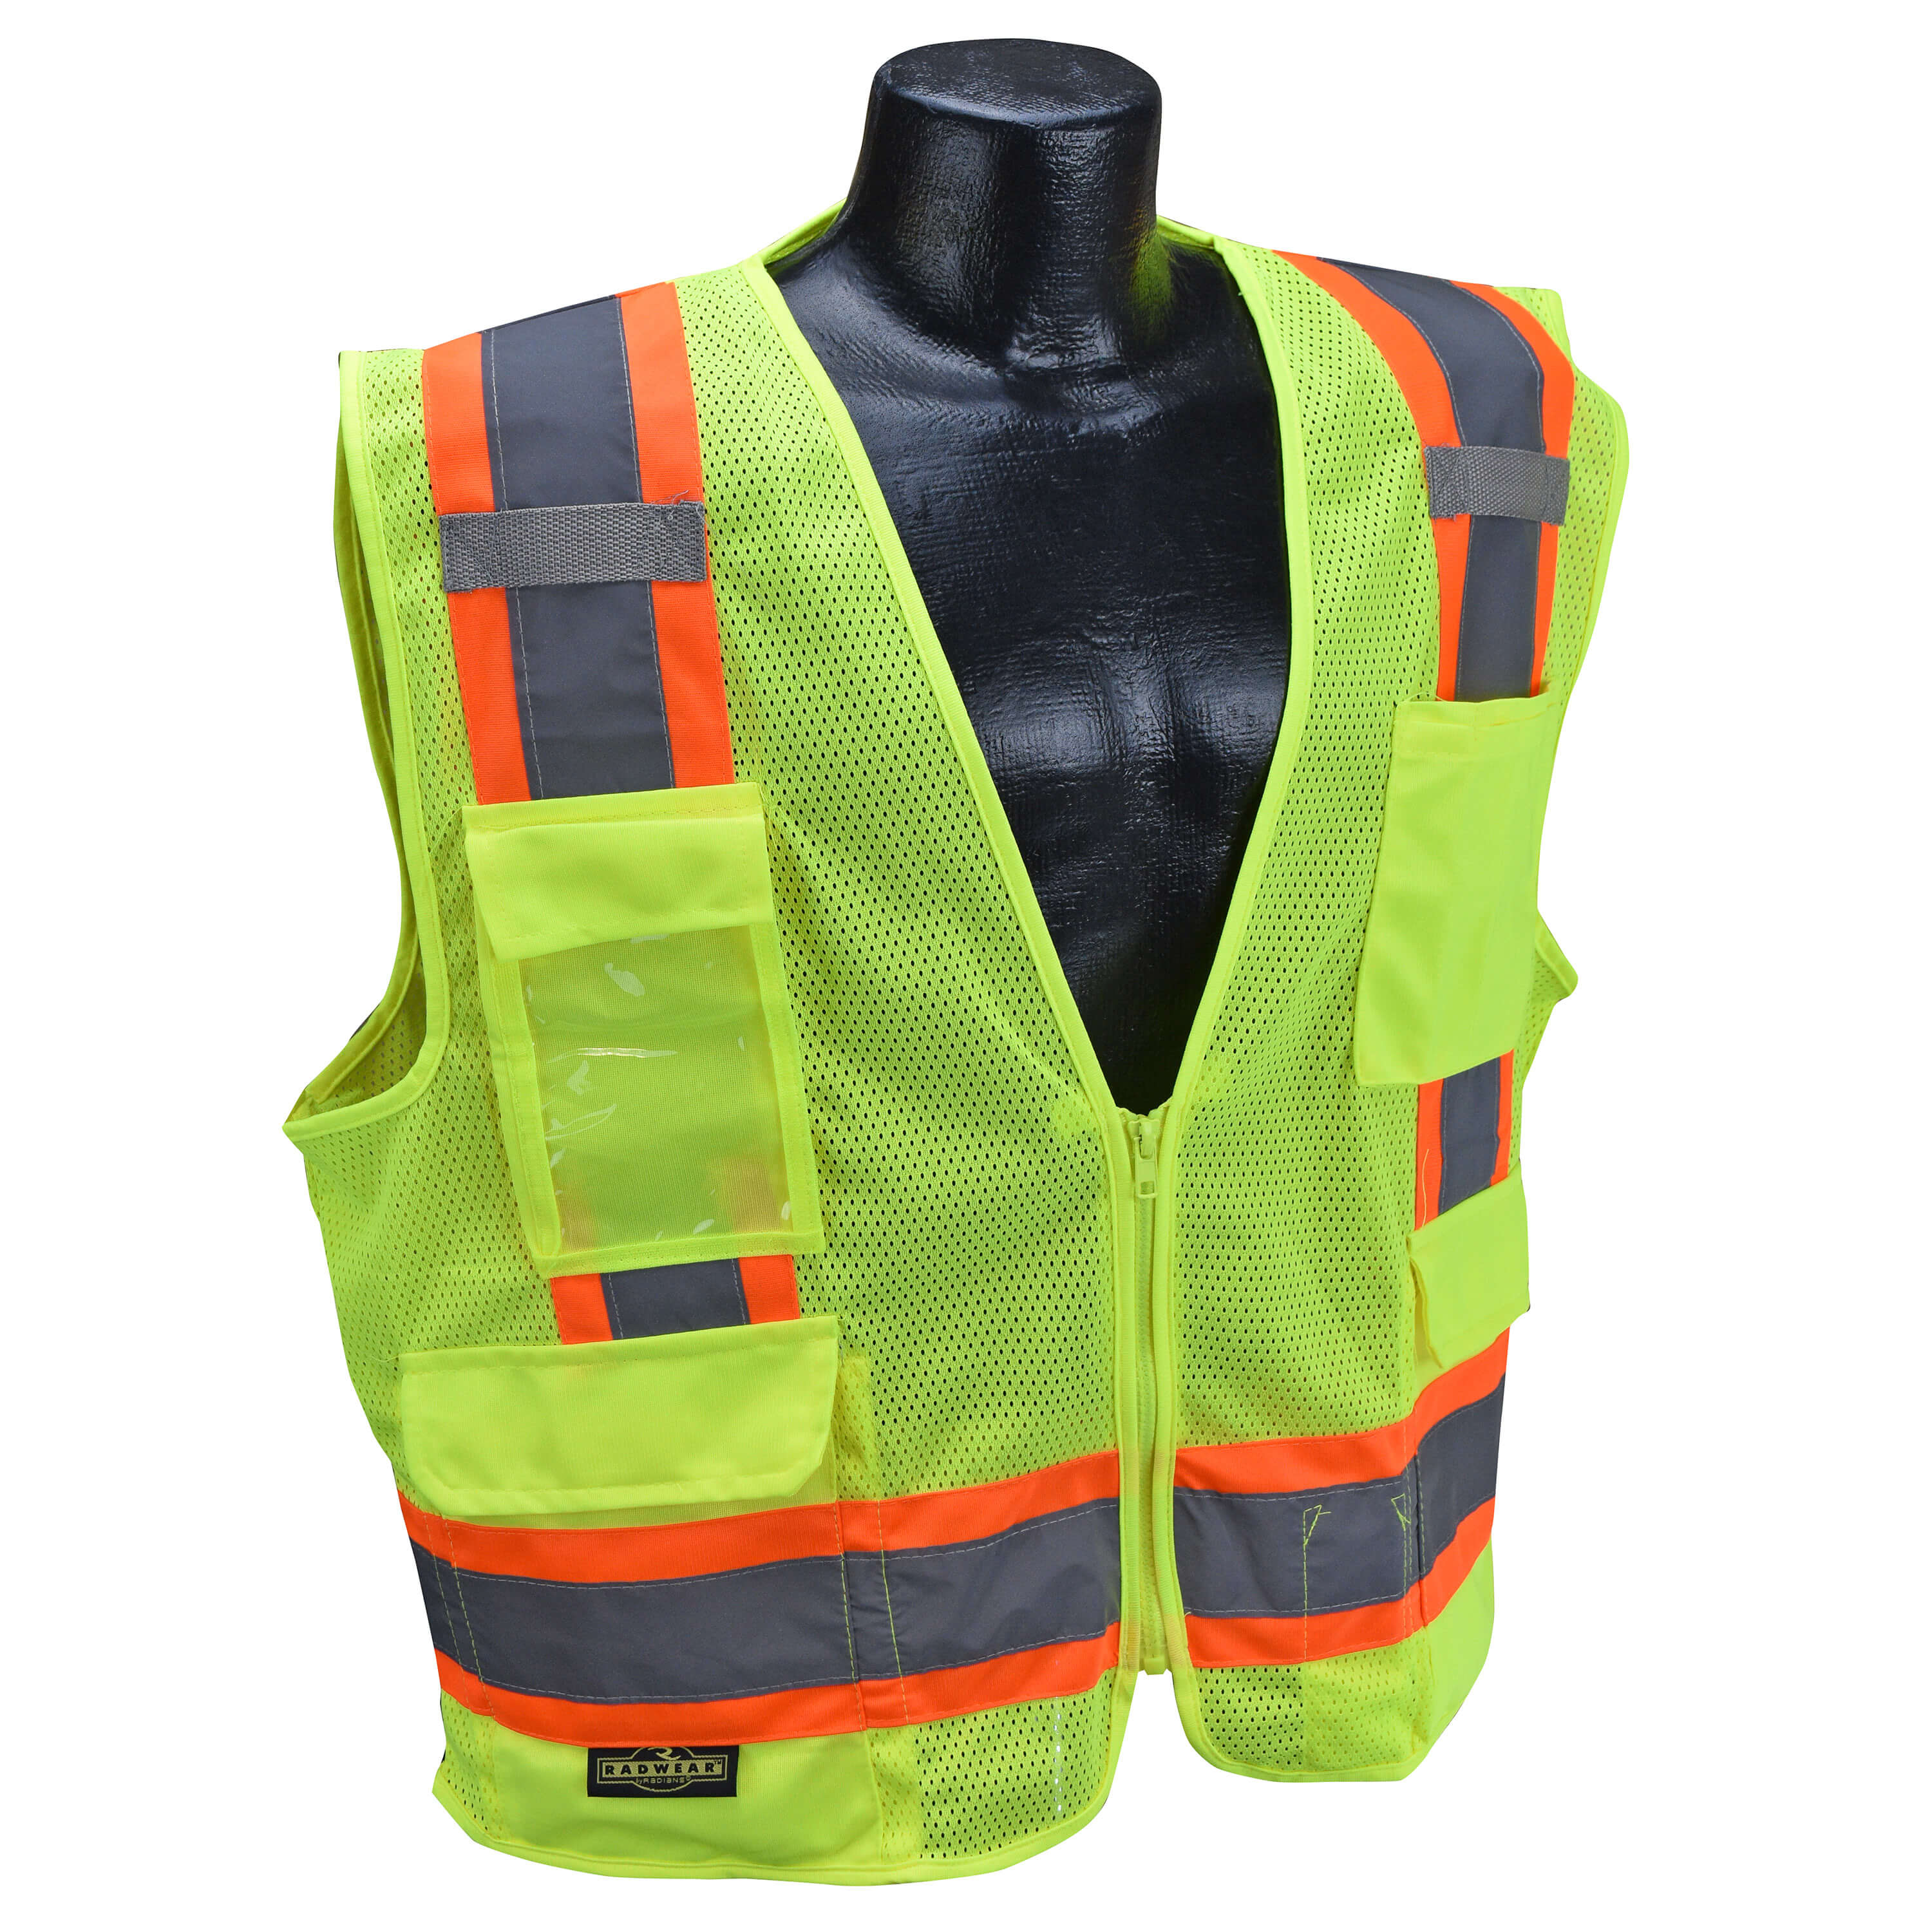 RADIANS SV6 TWO TONE SURVEYOR TYPE R CLASS 2 SAFETY VEST